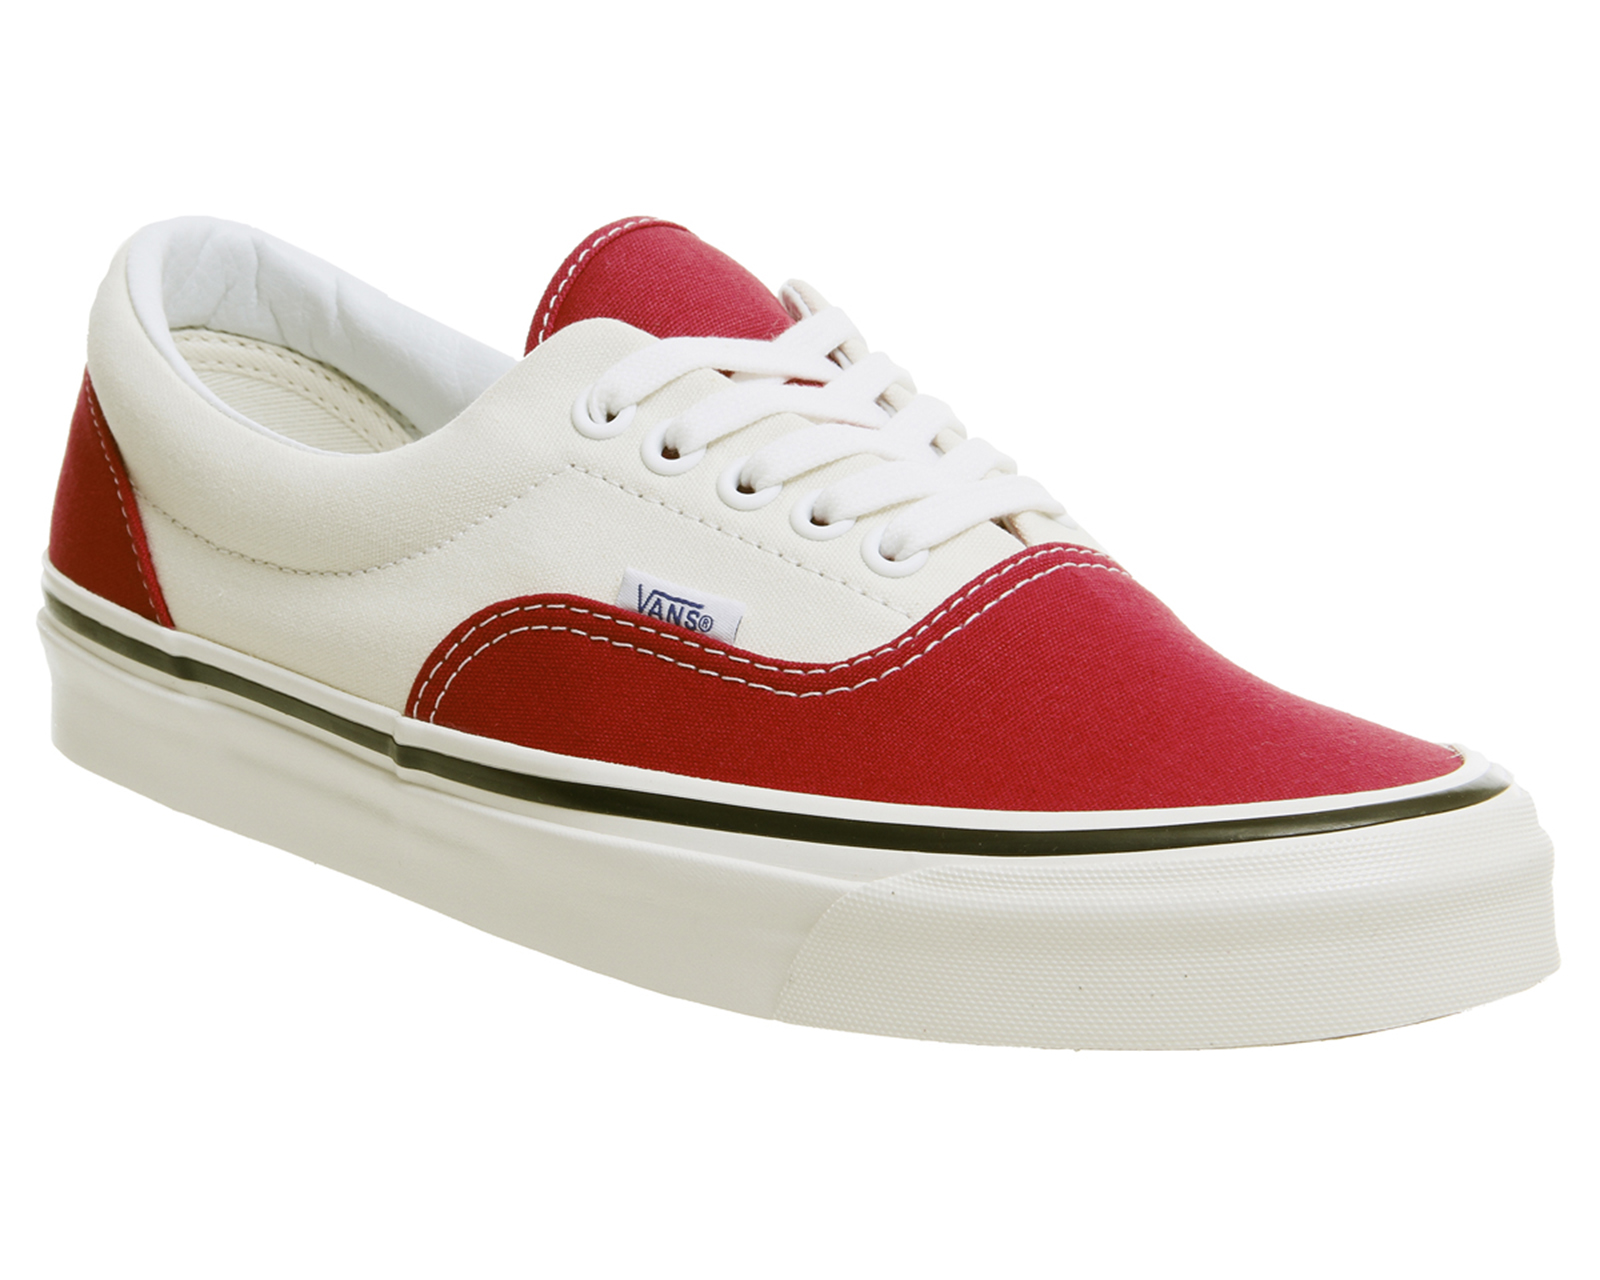 856390286b Sentinel Mens Vans Red Canvas Lace Up Trainers Size UK 9  Ex-Display